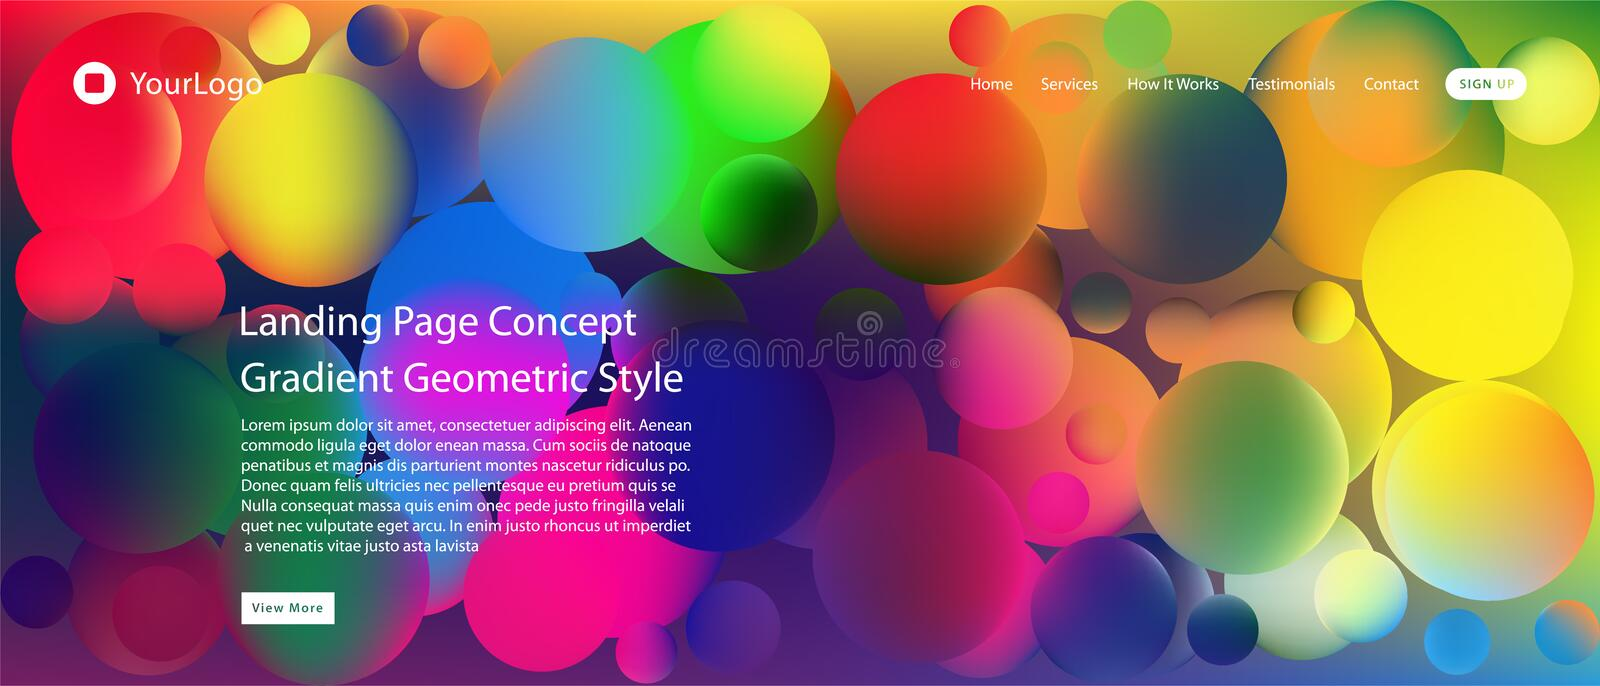 Website or mobile app landing page with illustration of Abstract Colorful Minimal Geometric Pattern Background Design and Gradient. Shapes stock illustration